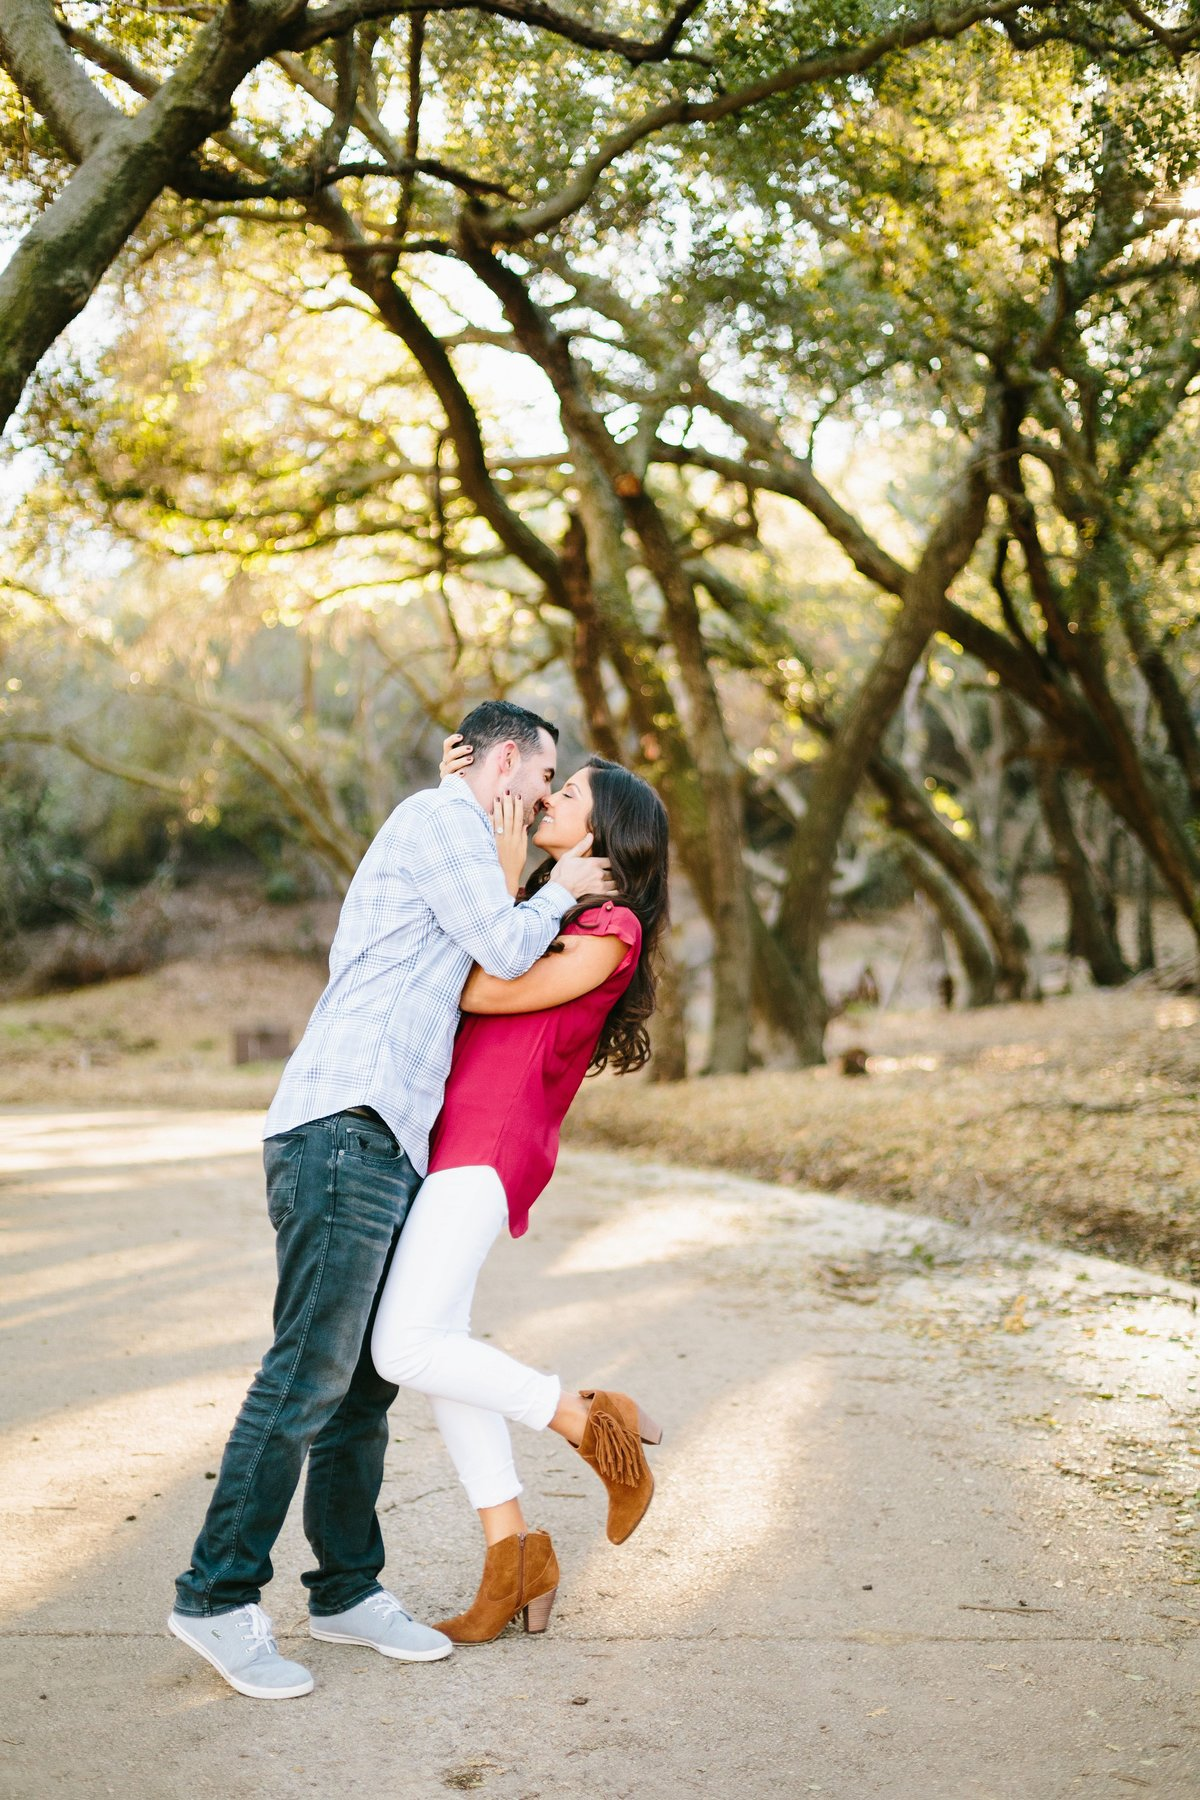 Best California Engagement Photographer_Jodee Debes Photography_098